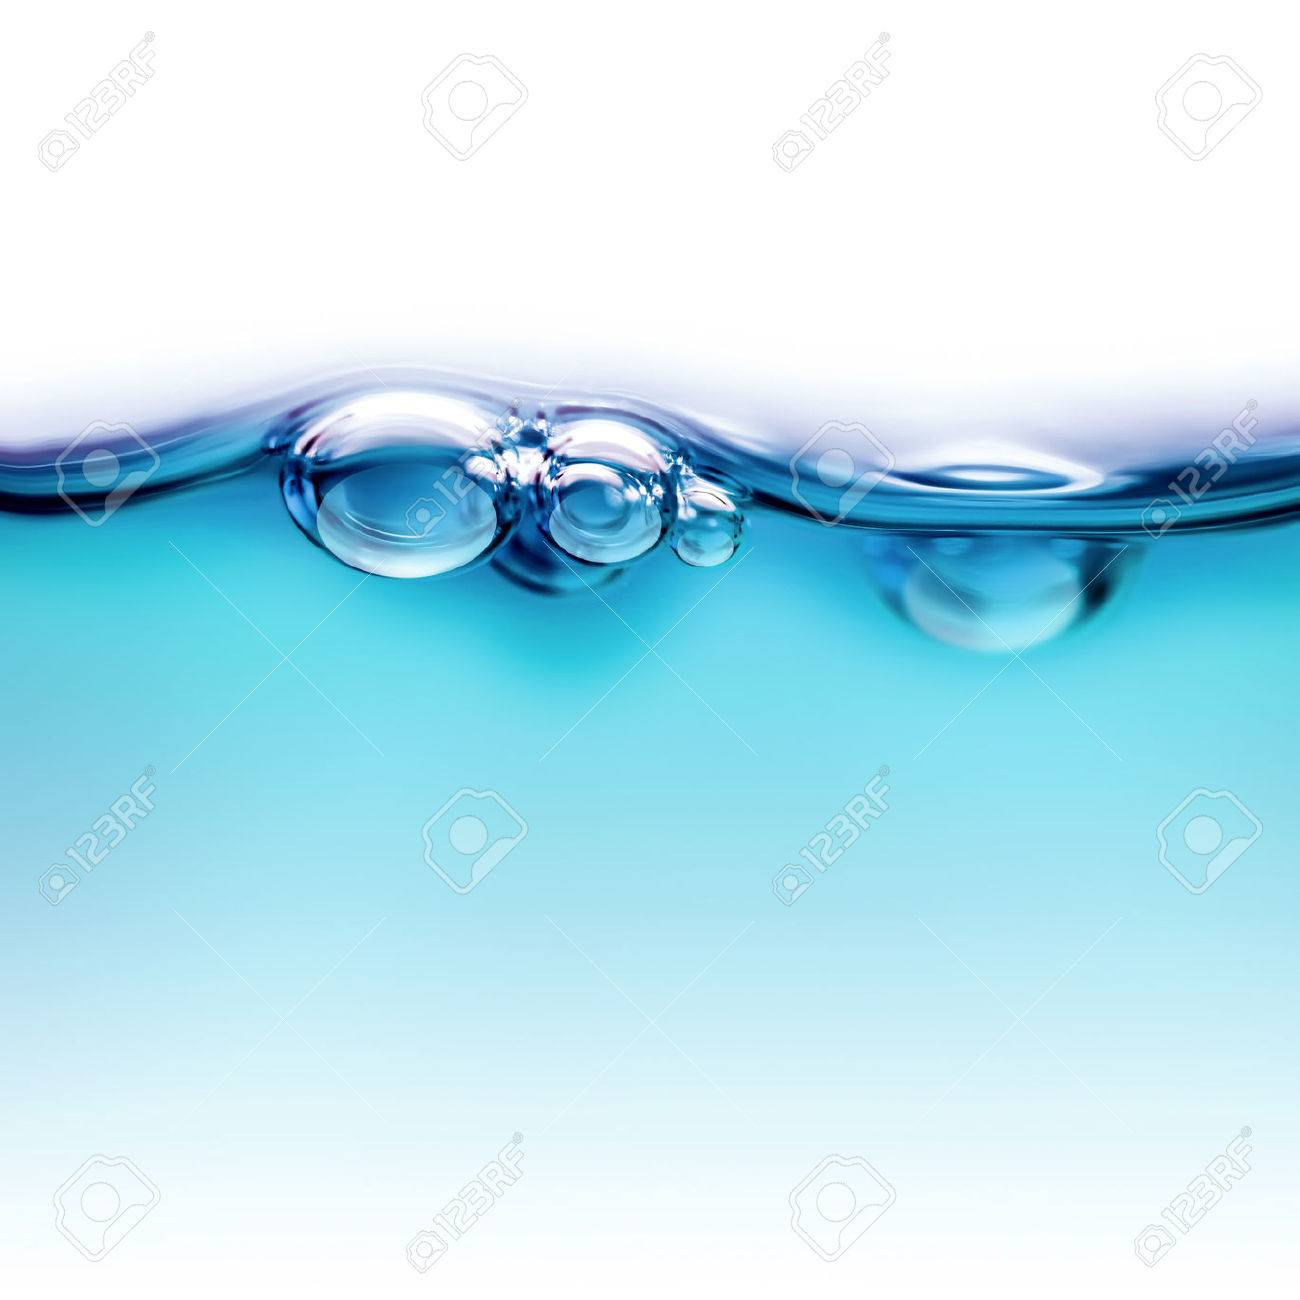 water line with air bubbles close up - 52584597